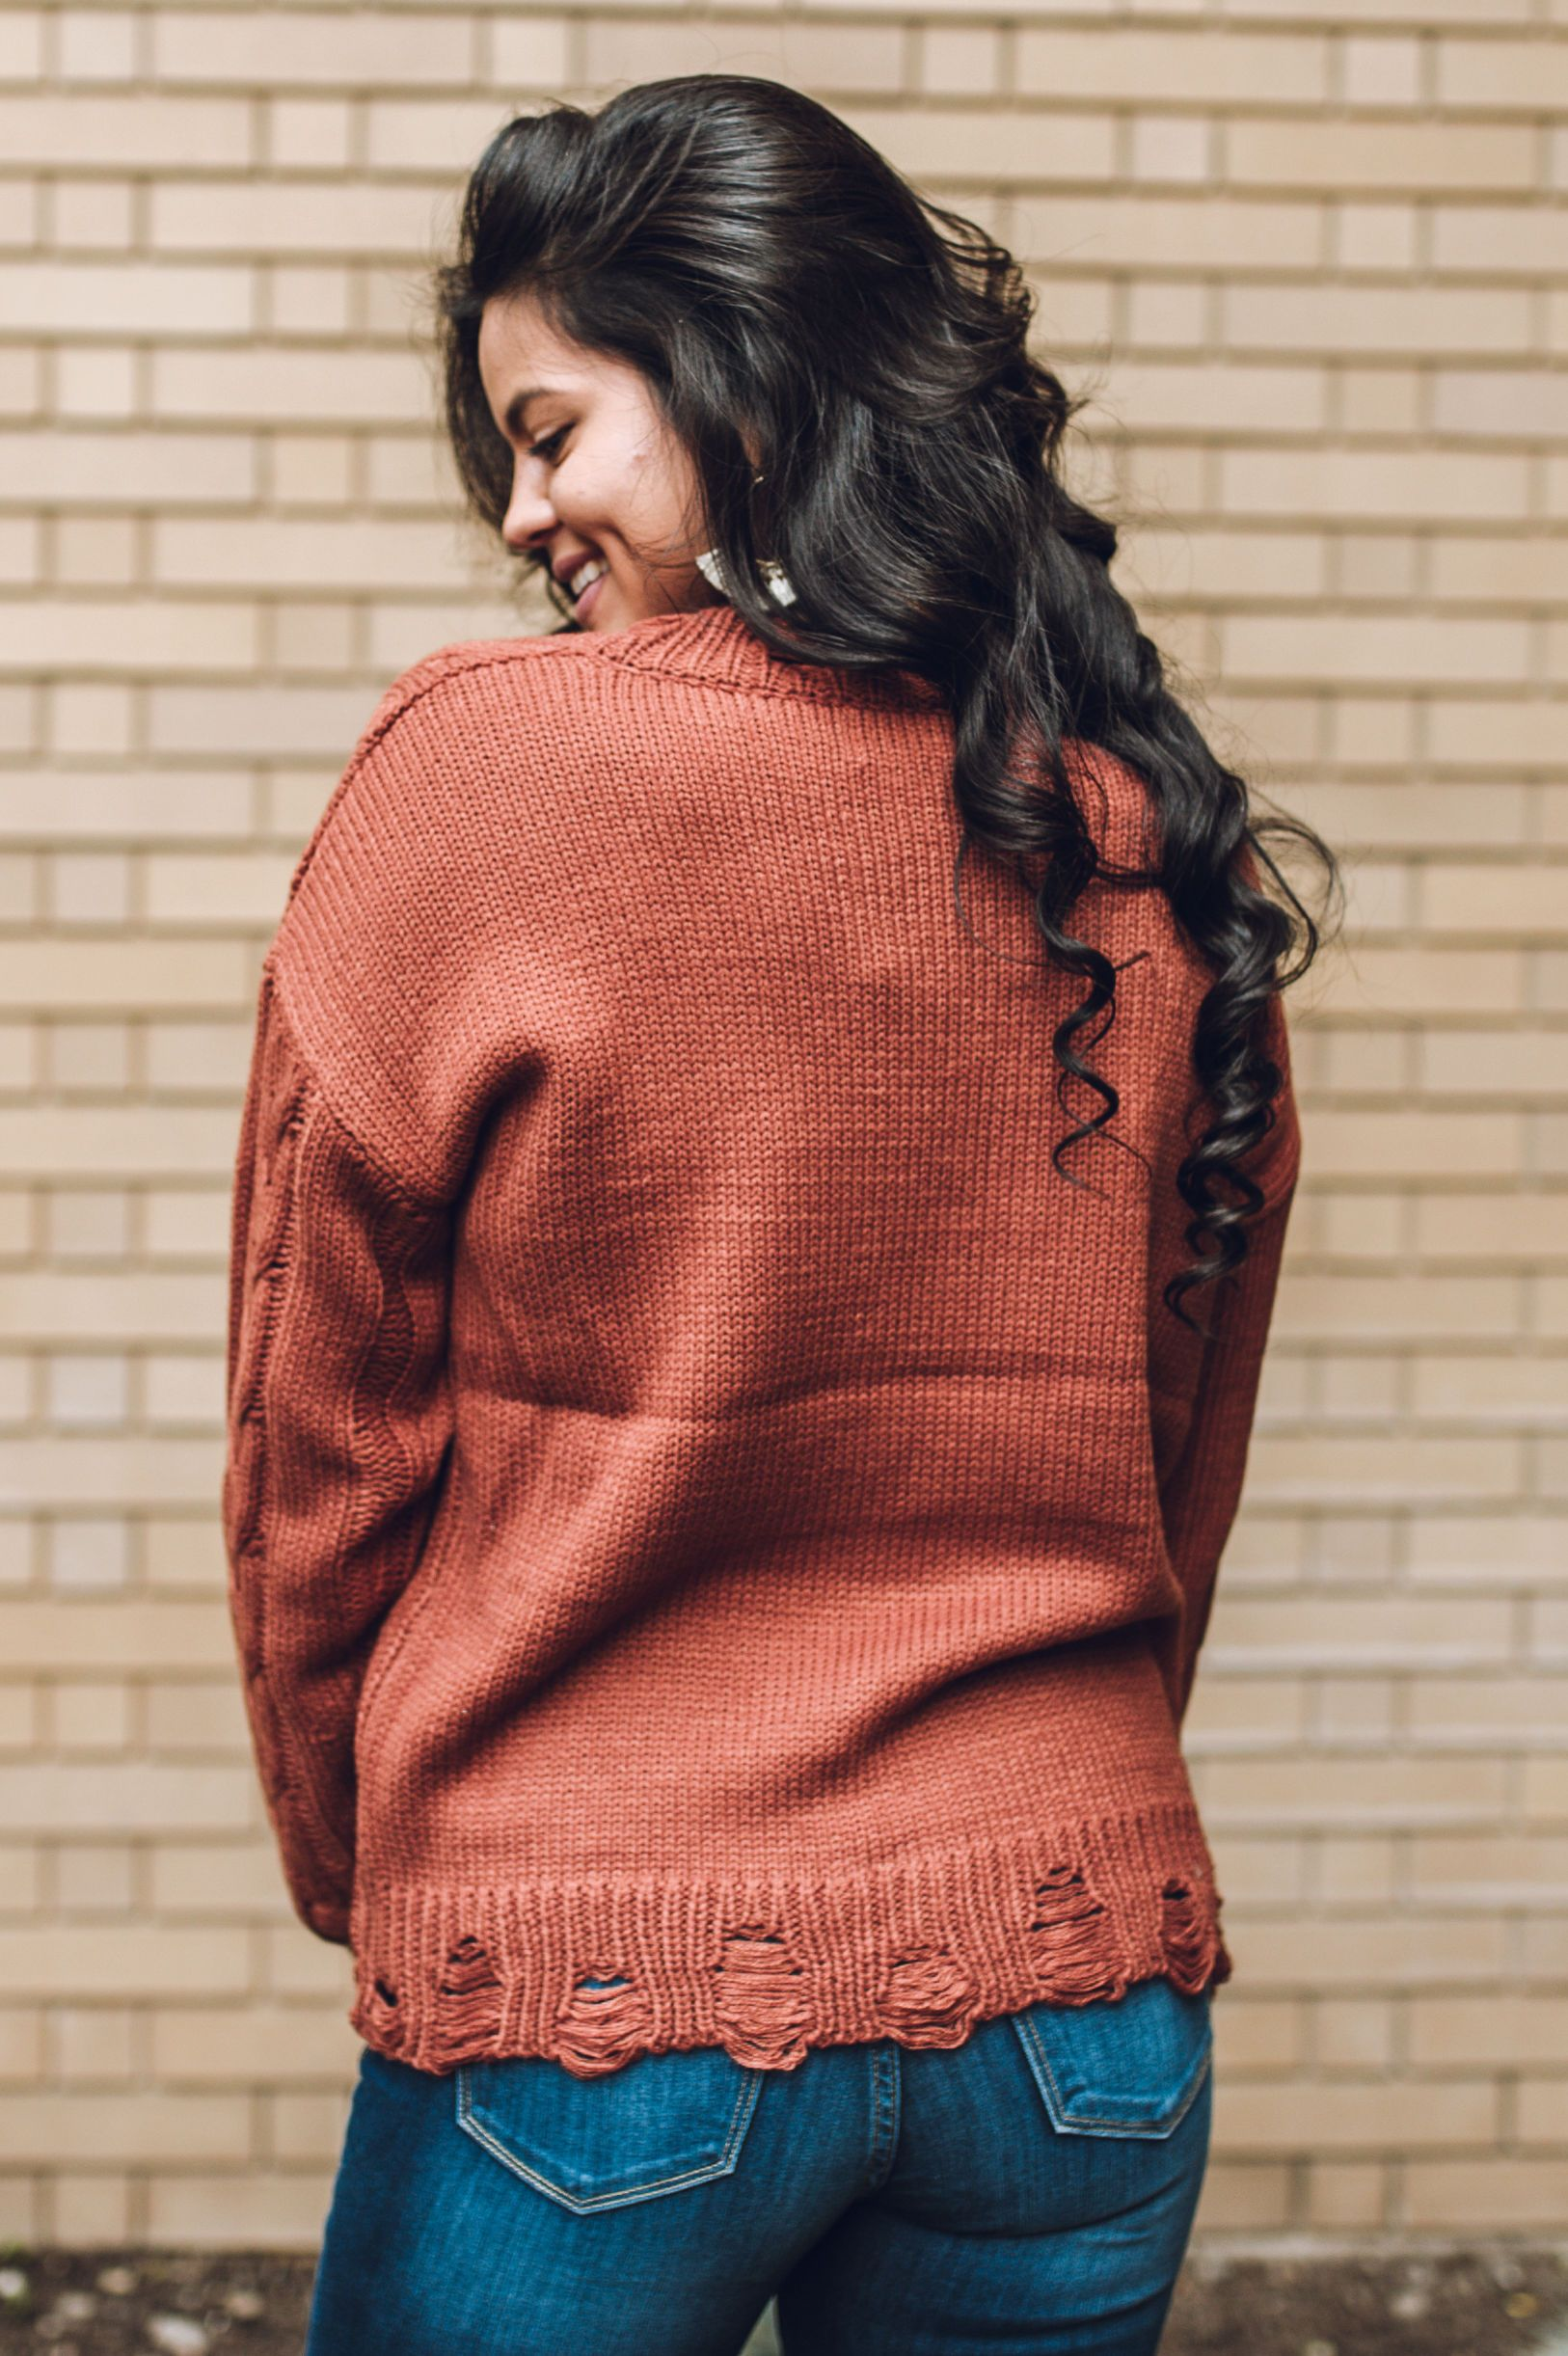 Gathered Together Sweater